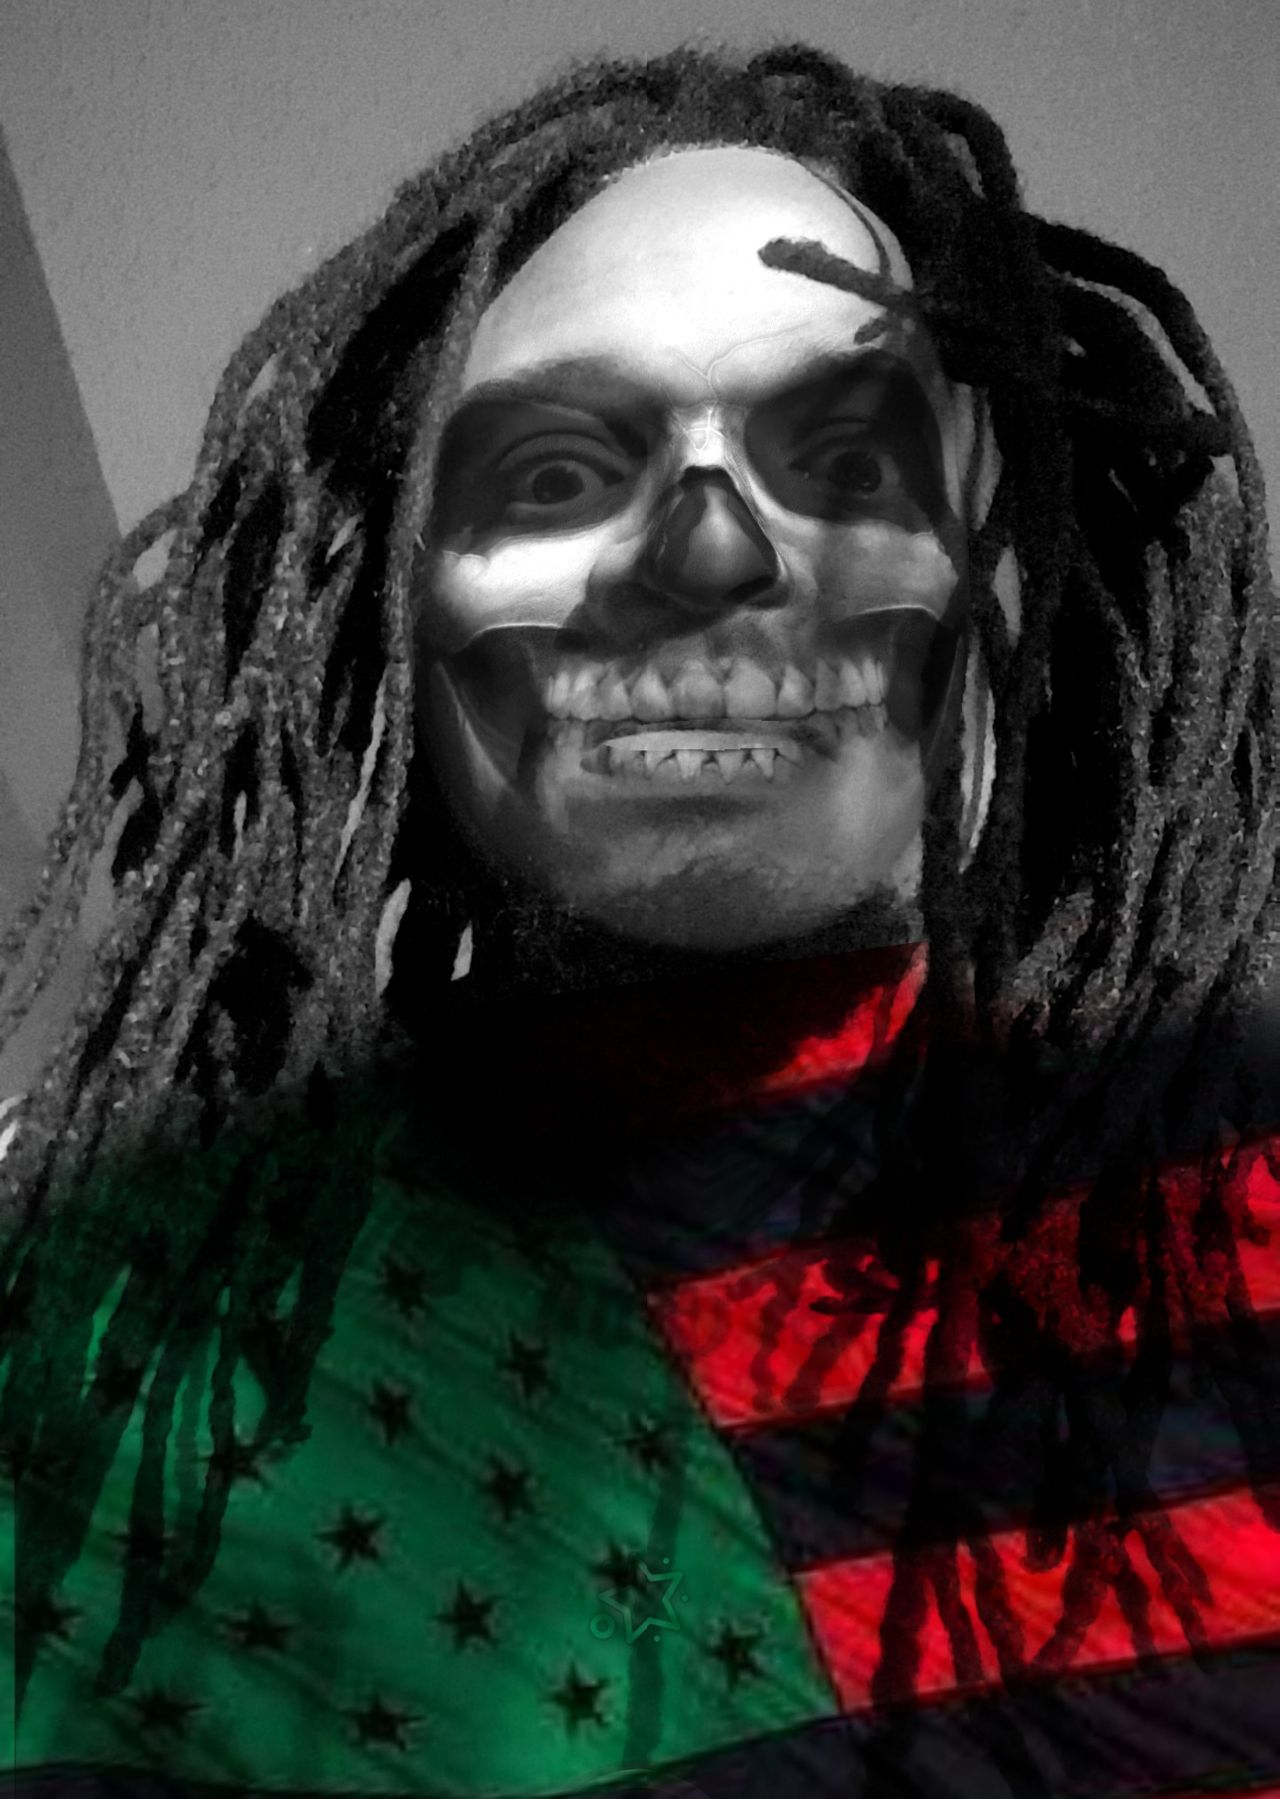 Gargamel. One Person Headshot Adult Human Face Portrait Rasta Rude People Taking Photos My Unique Style Thats Me  Thats Me  Creativity RastaRude One Love❤ RASTA From My Point Of View Welcome To Black Black Background